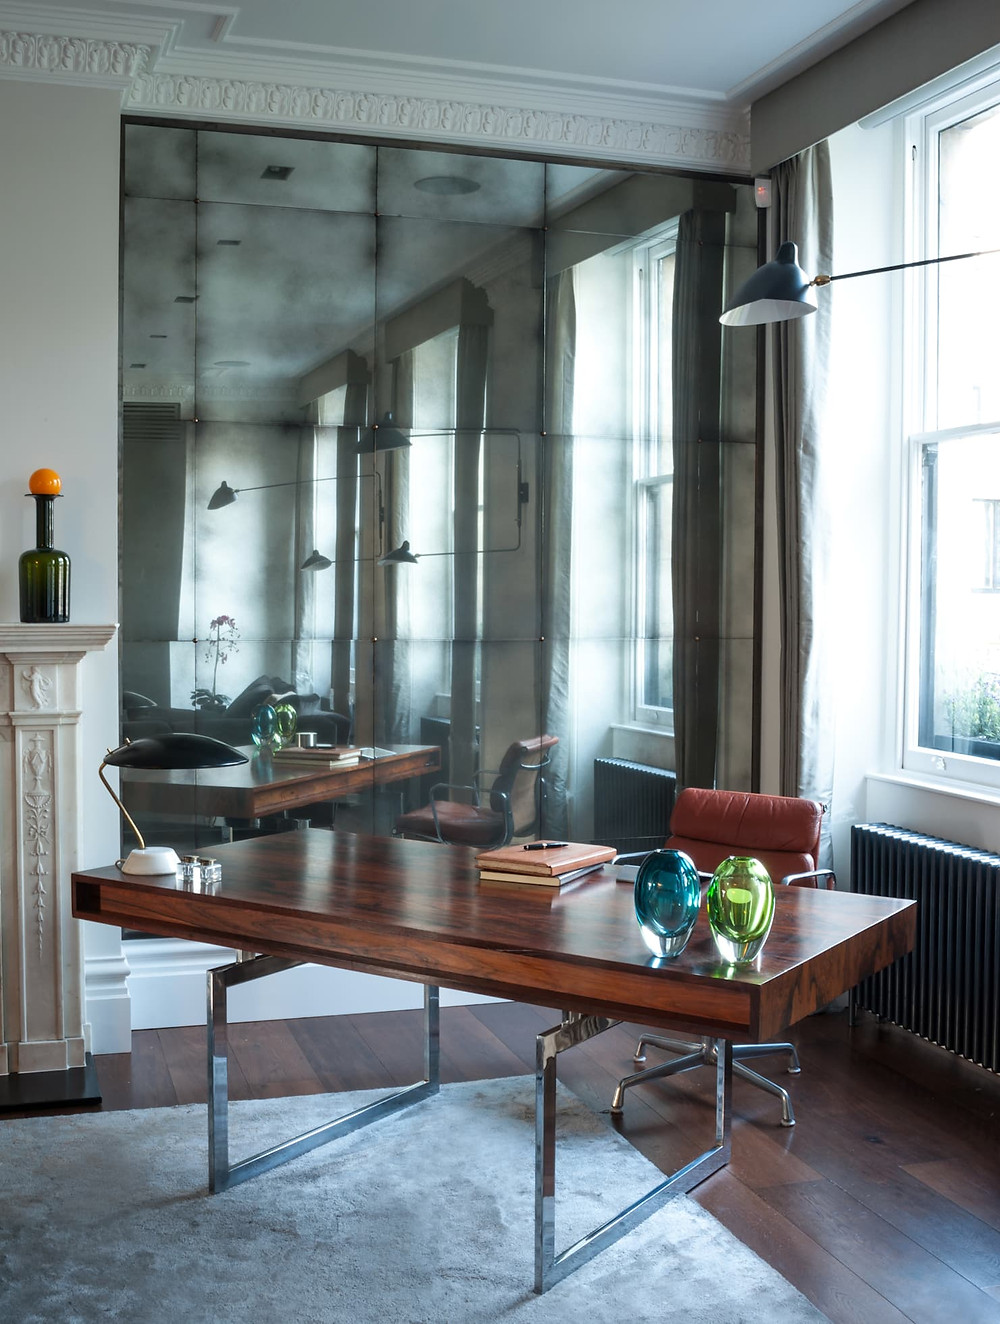 Wall clad with antique mirrors